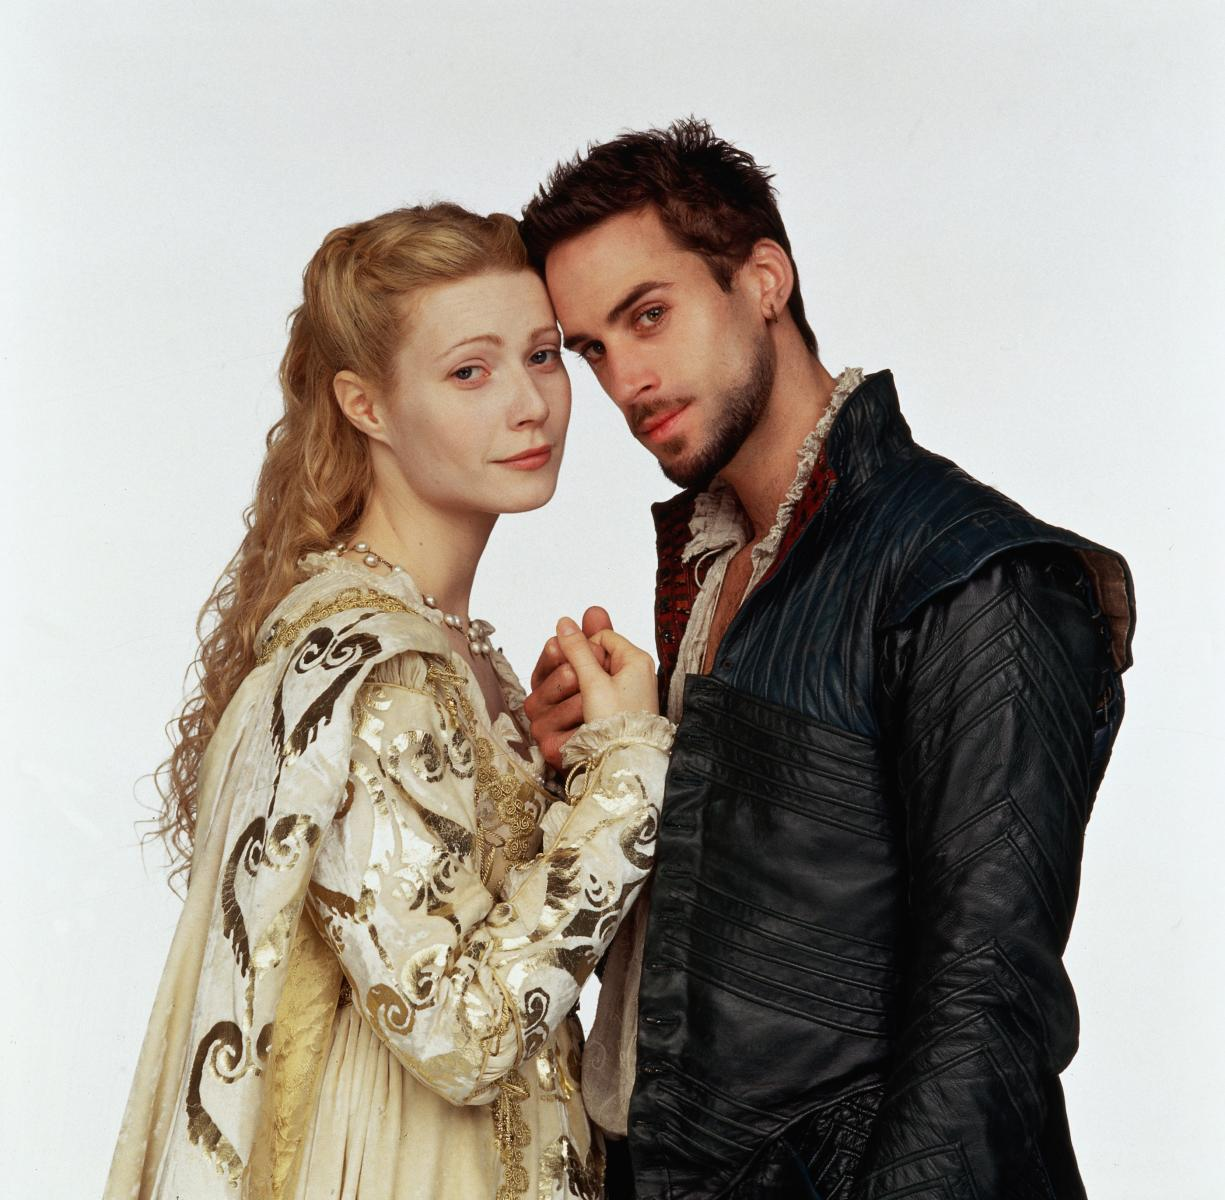 a movie analysis of shakespeare in love This majestic, romantic movie imagines the inspiration and events surrounding the writing of william shakespeare's storied lovers' tragedy, romeo and juliet shakespeare in love begins with a mid-career shakespeare ( joseph fiennes ) battling writer's block as he struggles to create a new masterpiece.